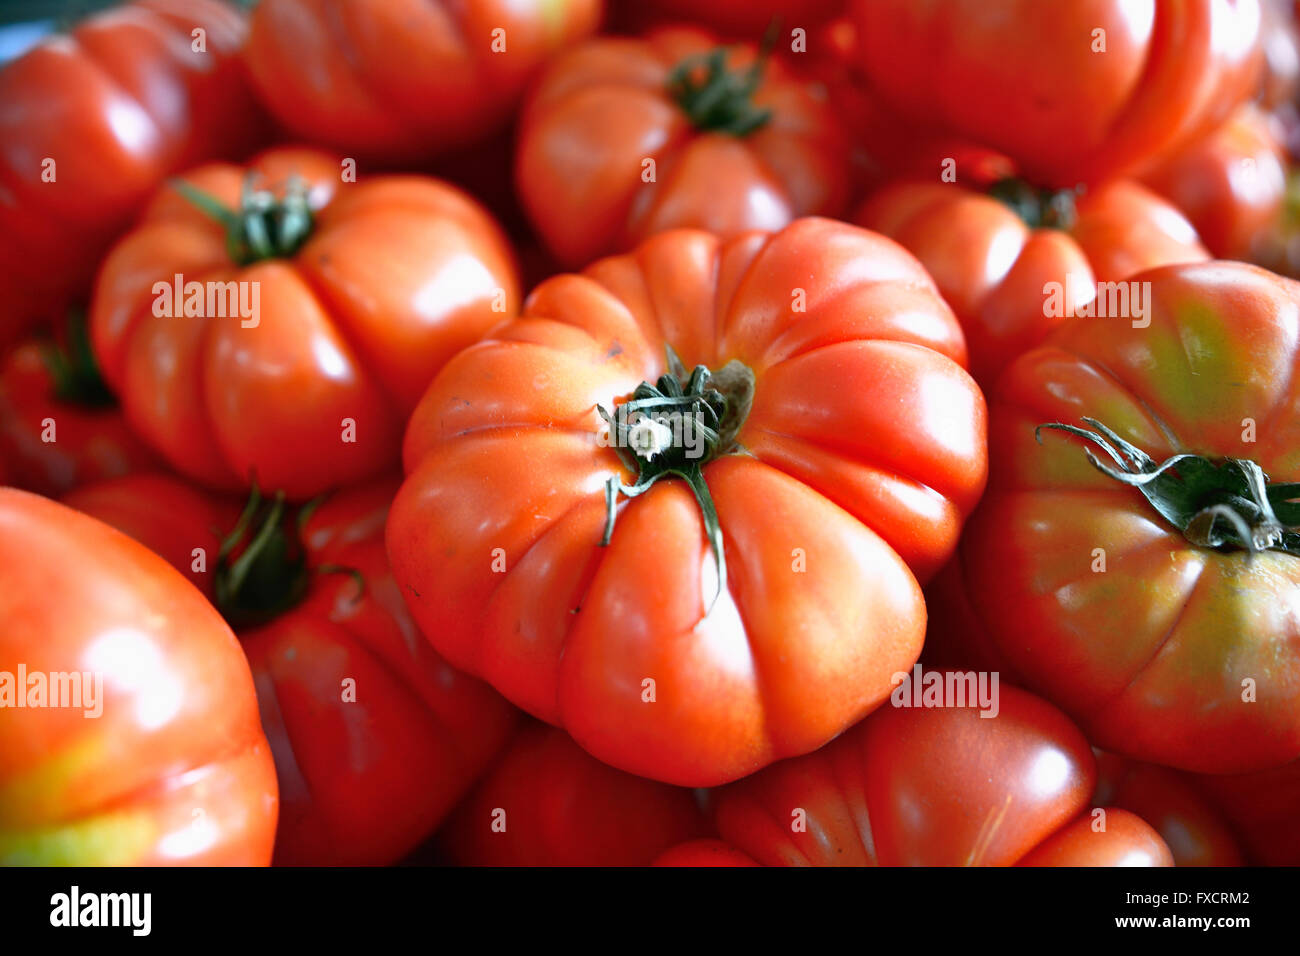 The tomato is the edible, often red berry-type fruit of the nightshade Solanum lycopersicum, commonly known as a - Stock Image